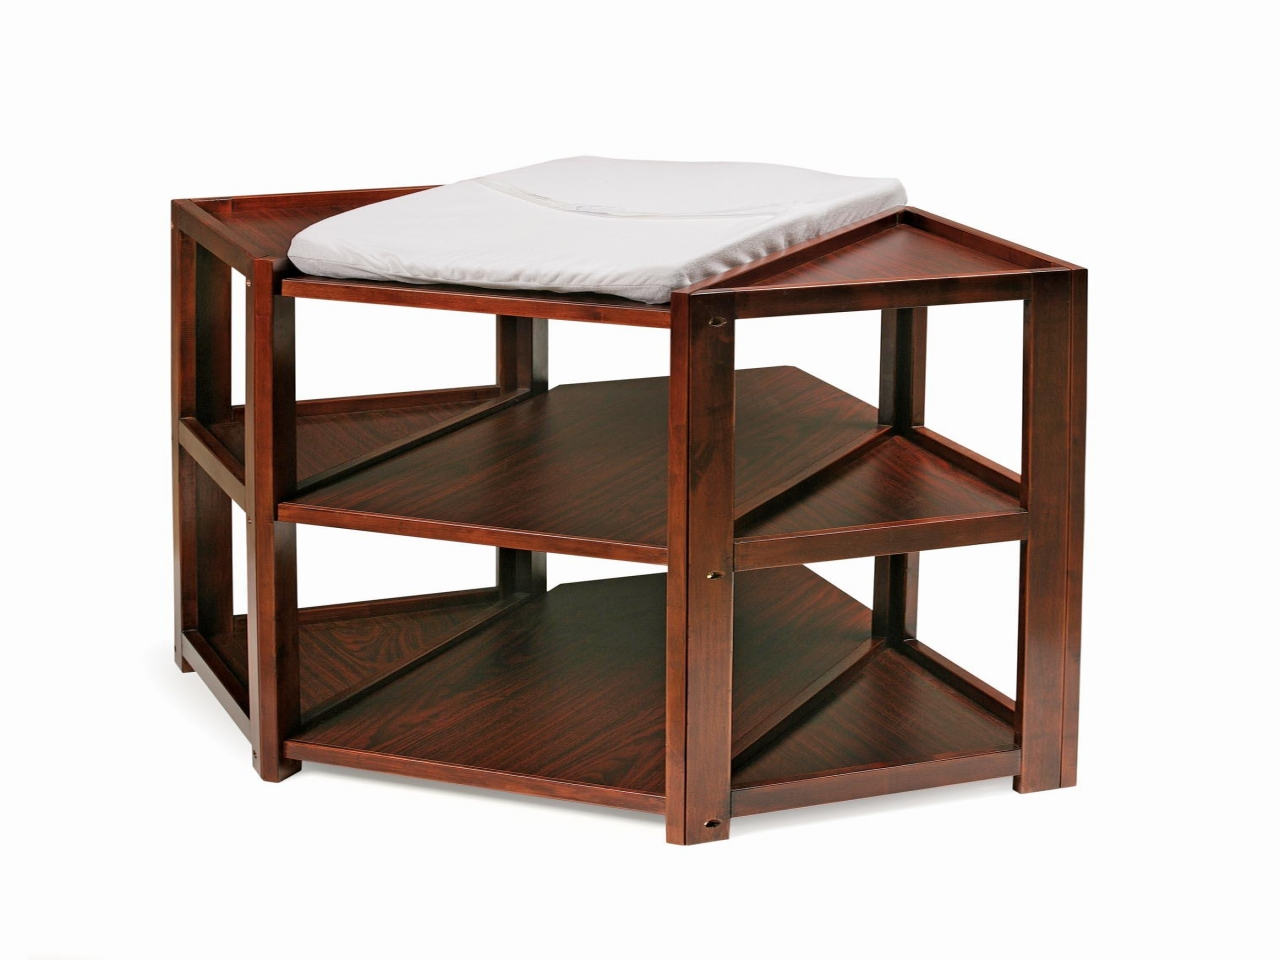 wood corner accent table kitchen and living space interior baby diaper changing mom oak large tables furniture small bunnings wicker lounge oriental desk lamp lamps west elm